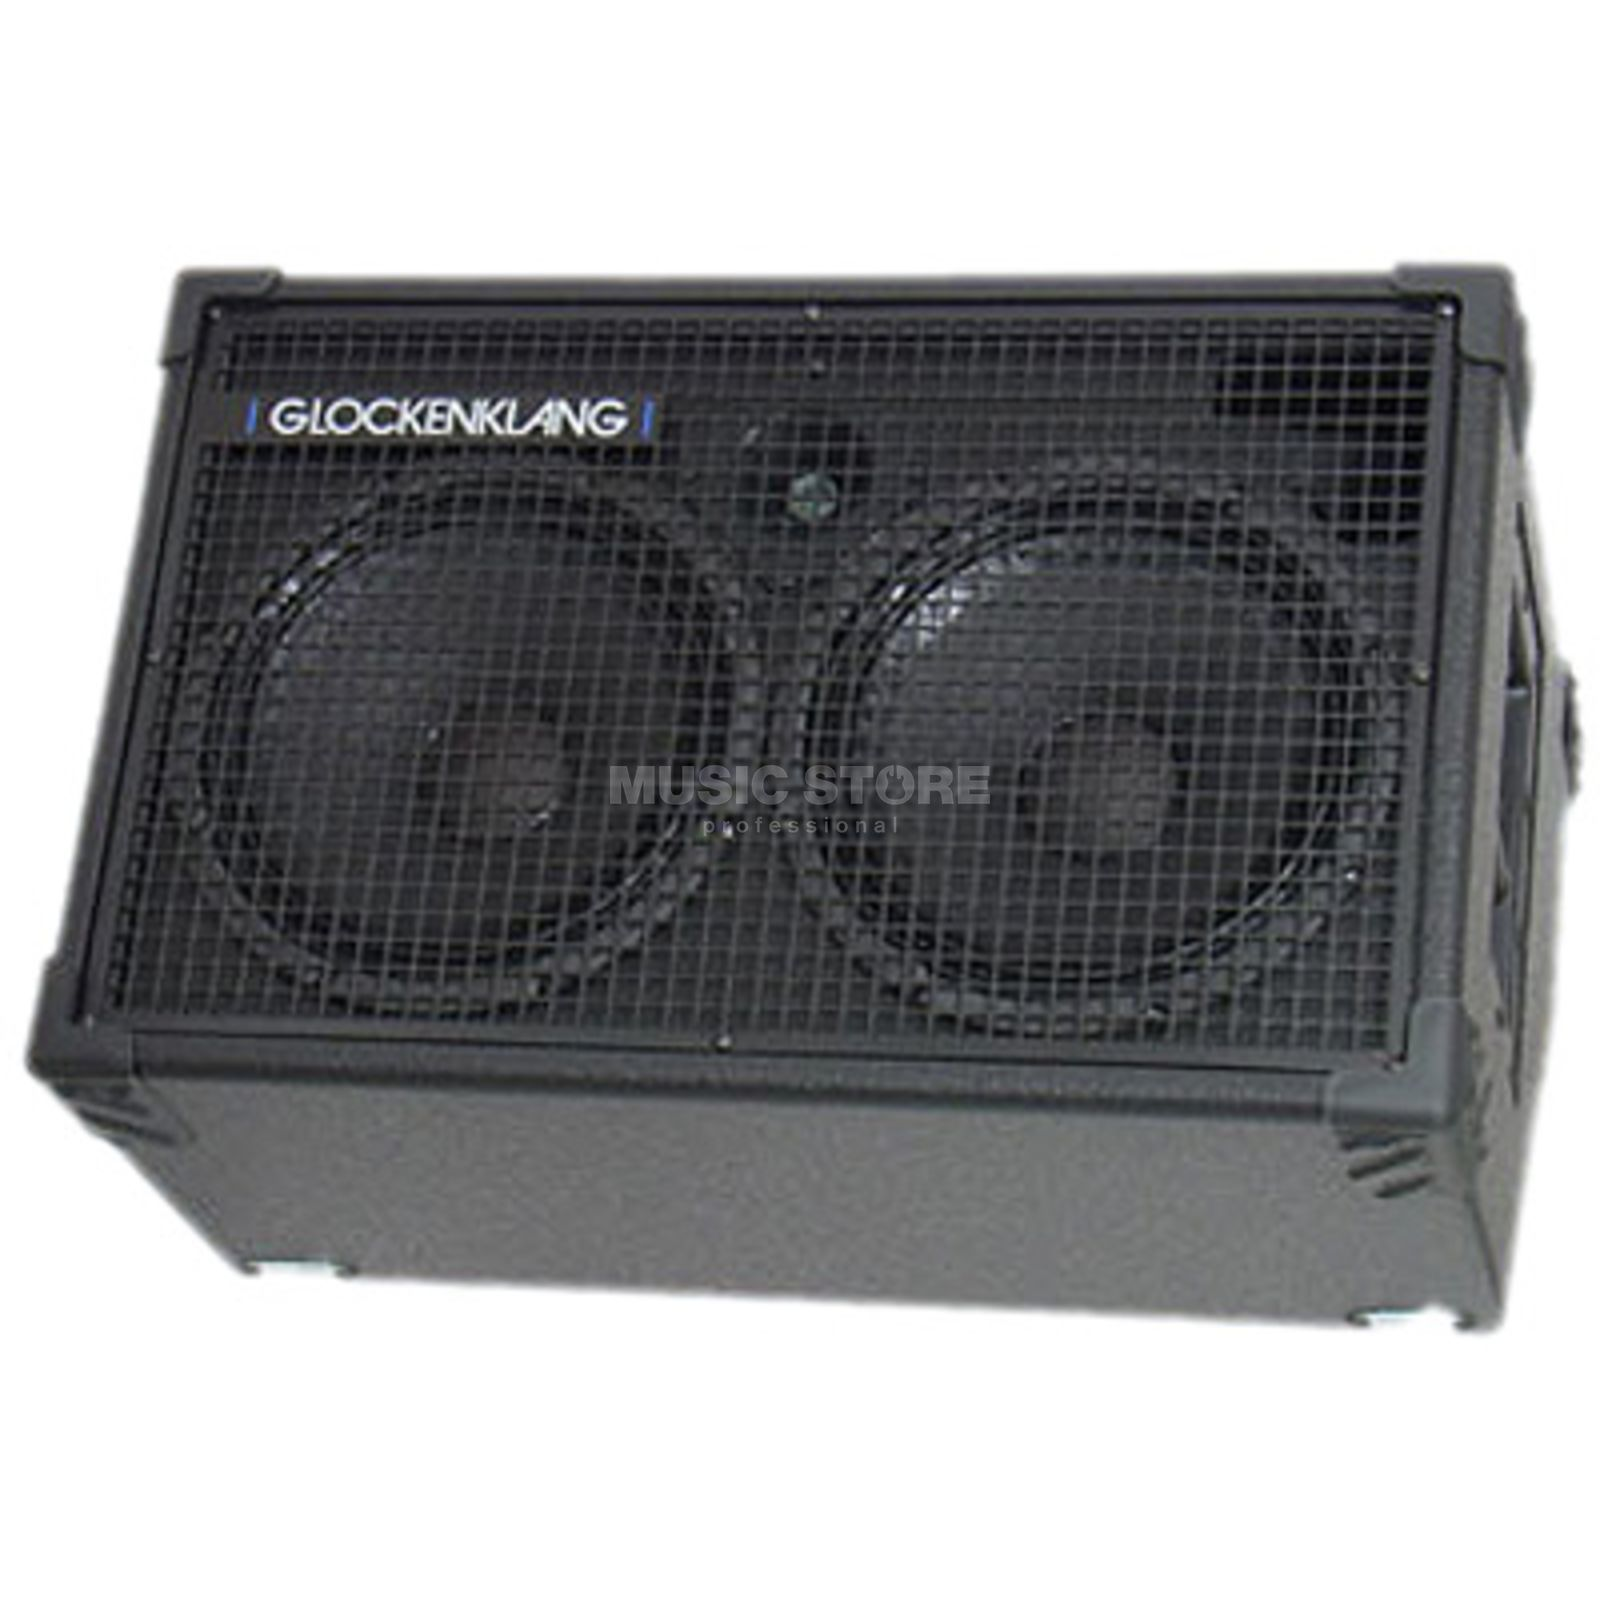 "Glockenklang Duo Wedge Box 16 Ohm 400 Watt 2x10"" Speaker +Horn Product Image"